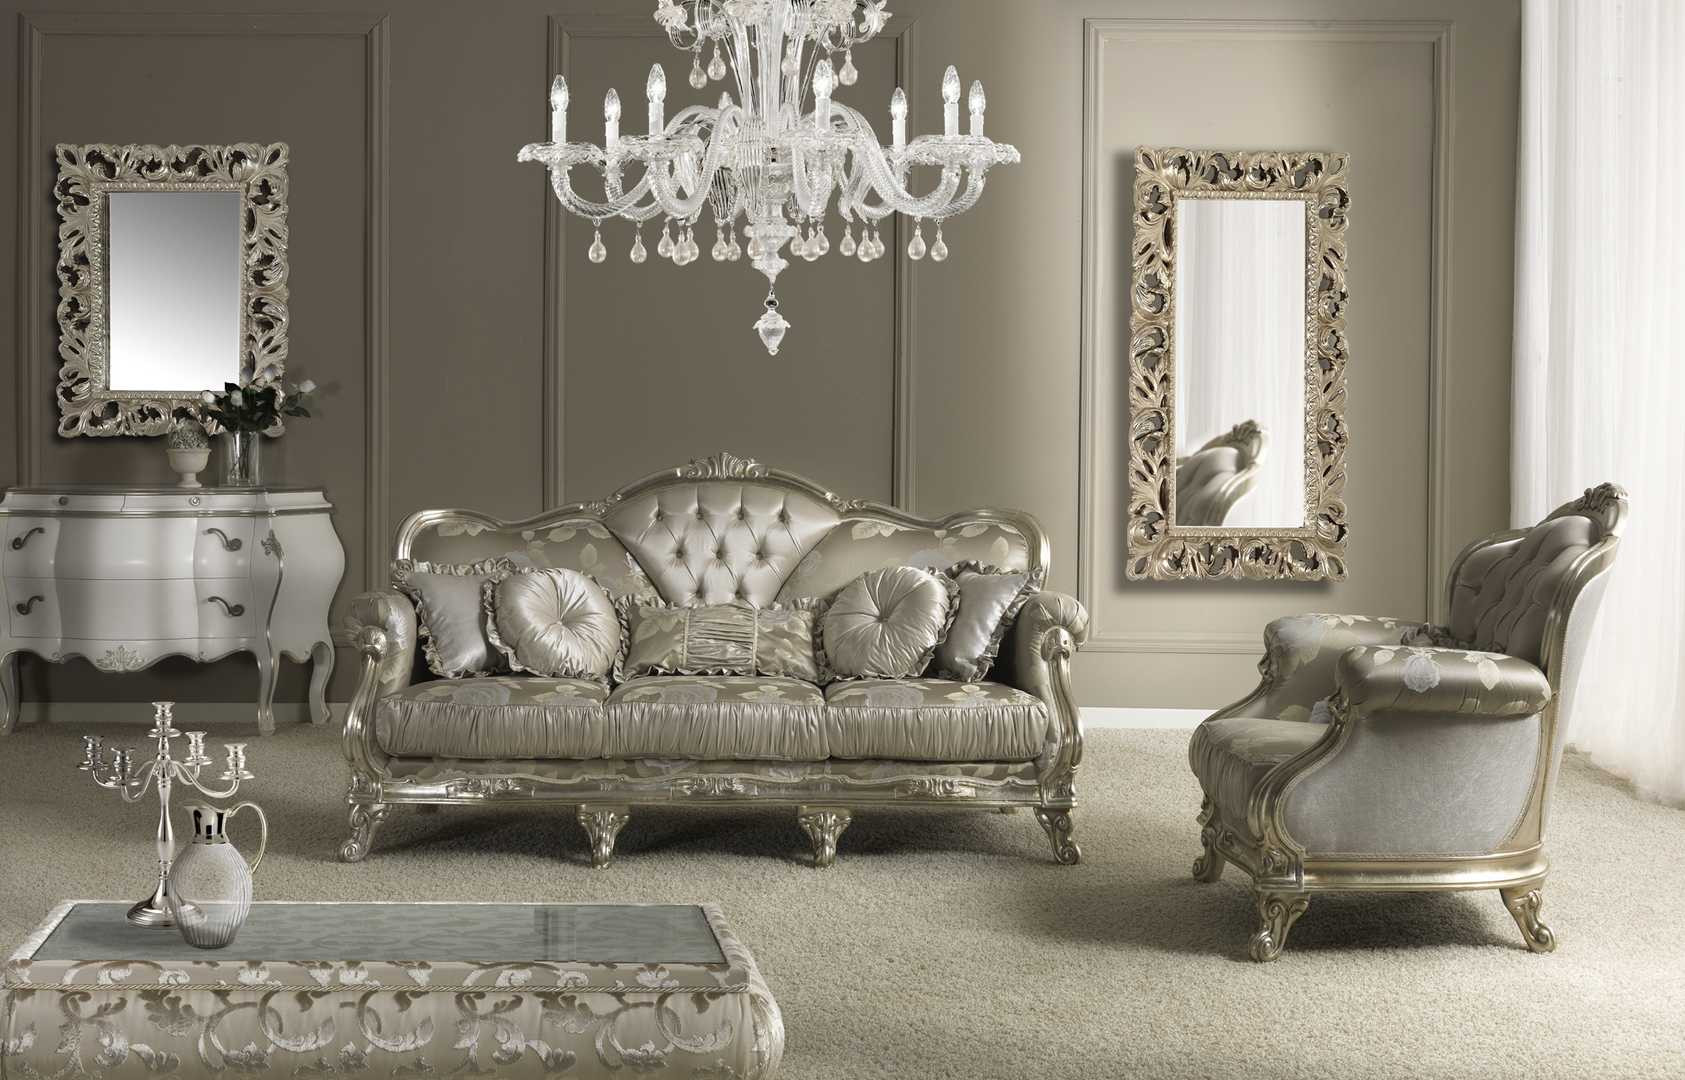 Best ideas about Italian Sofa Set . Save or Pin Napoleone Italian sofa set luxury sofa set made in Italy Now.